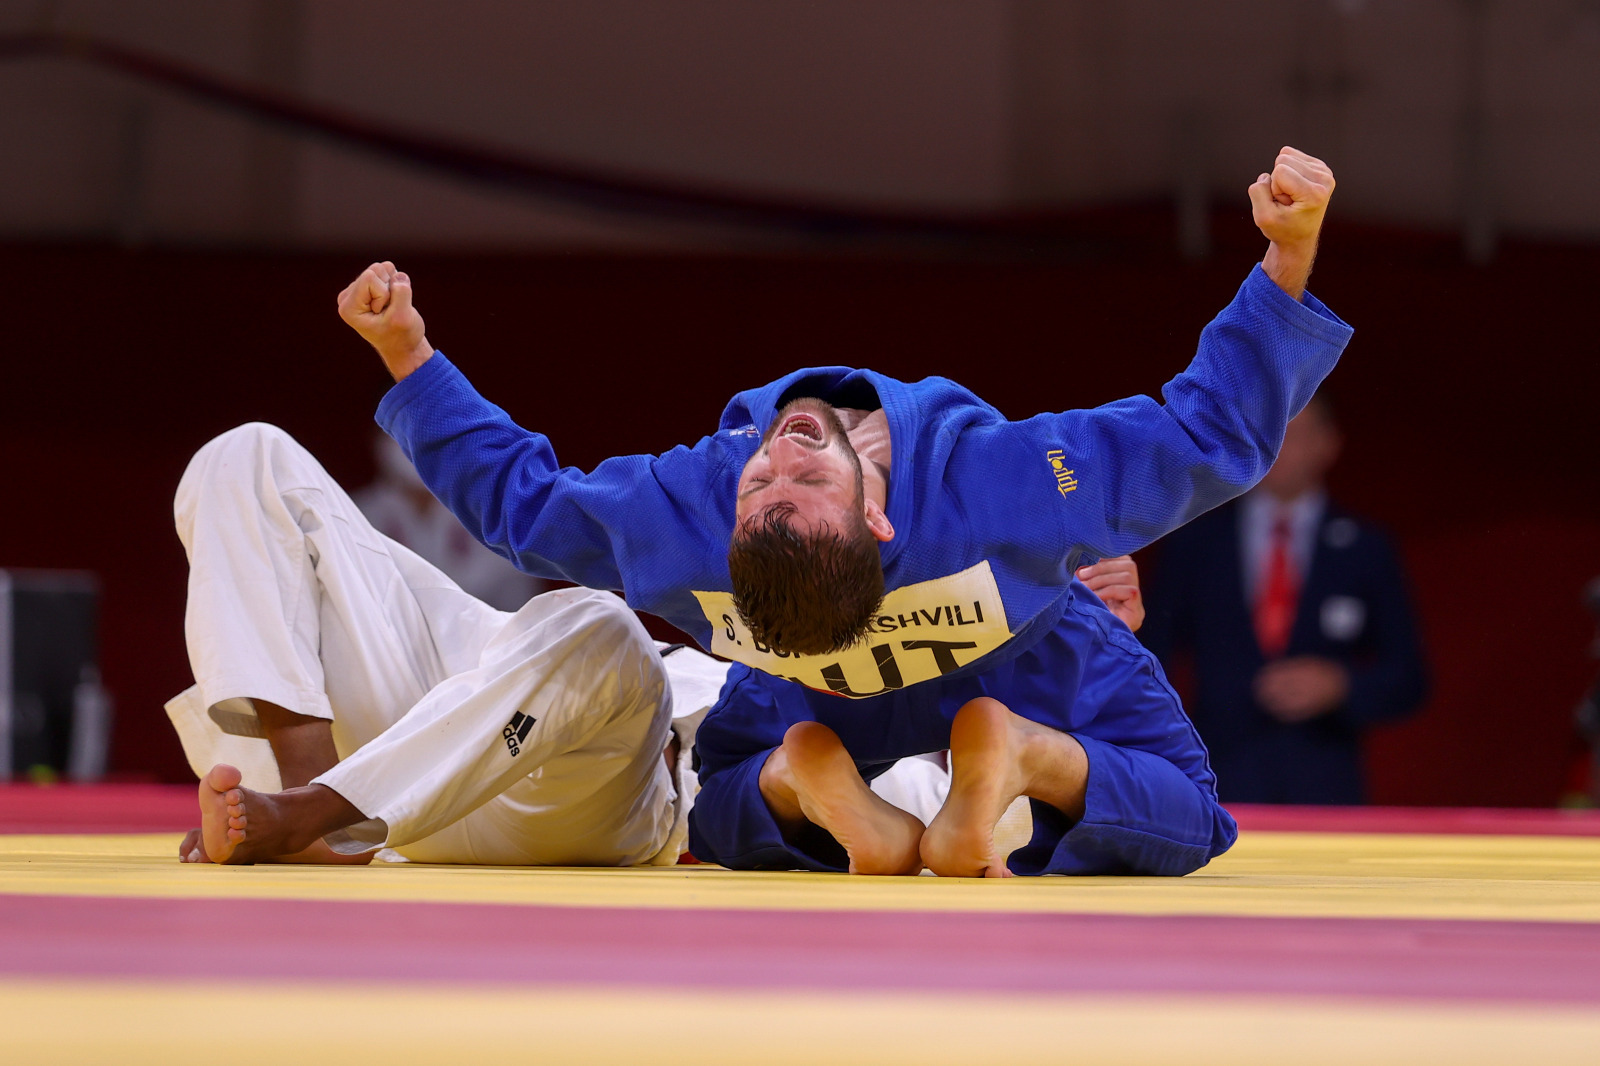 DAY FOUR PRELIMINARIES: OLYMPIC DREAMS COMING TRUE FOR EUROPEAN OUTSIDERS